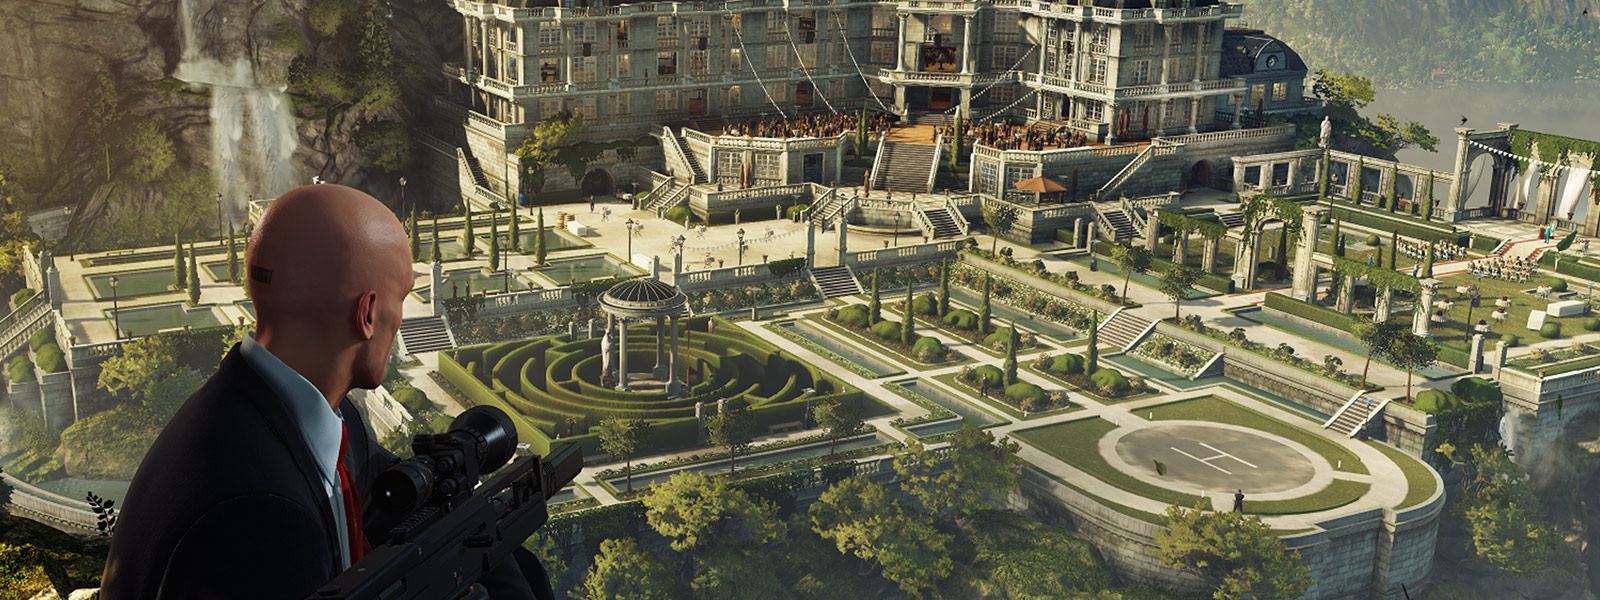 Agent 47 holds a sniper rifle while overlooking a large mansion on the side of a mountain